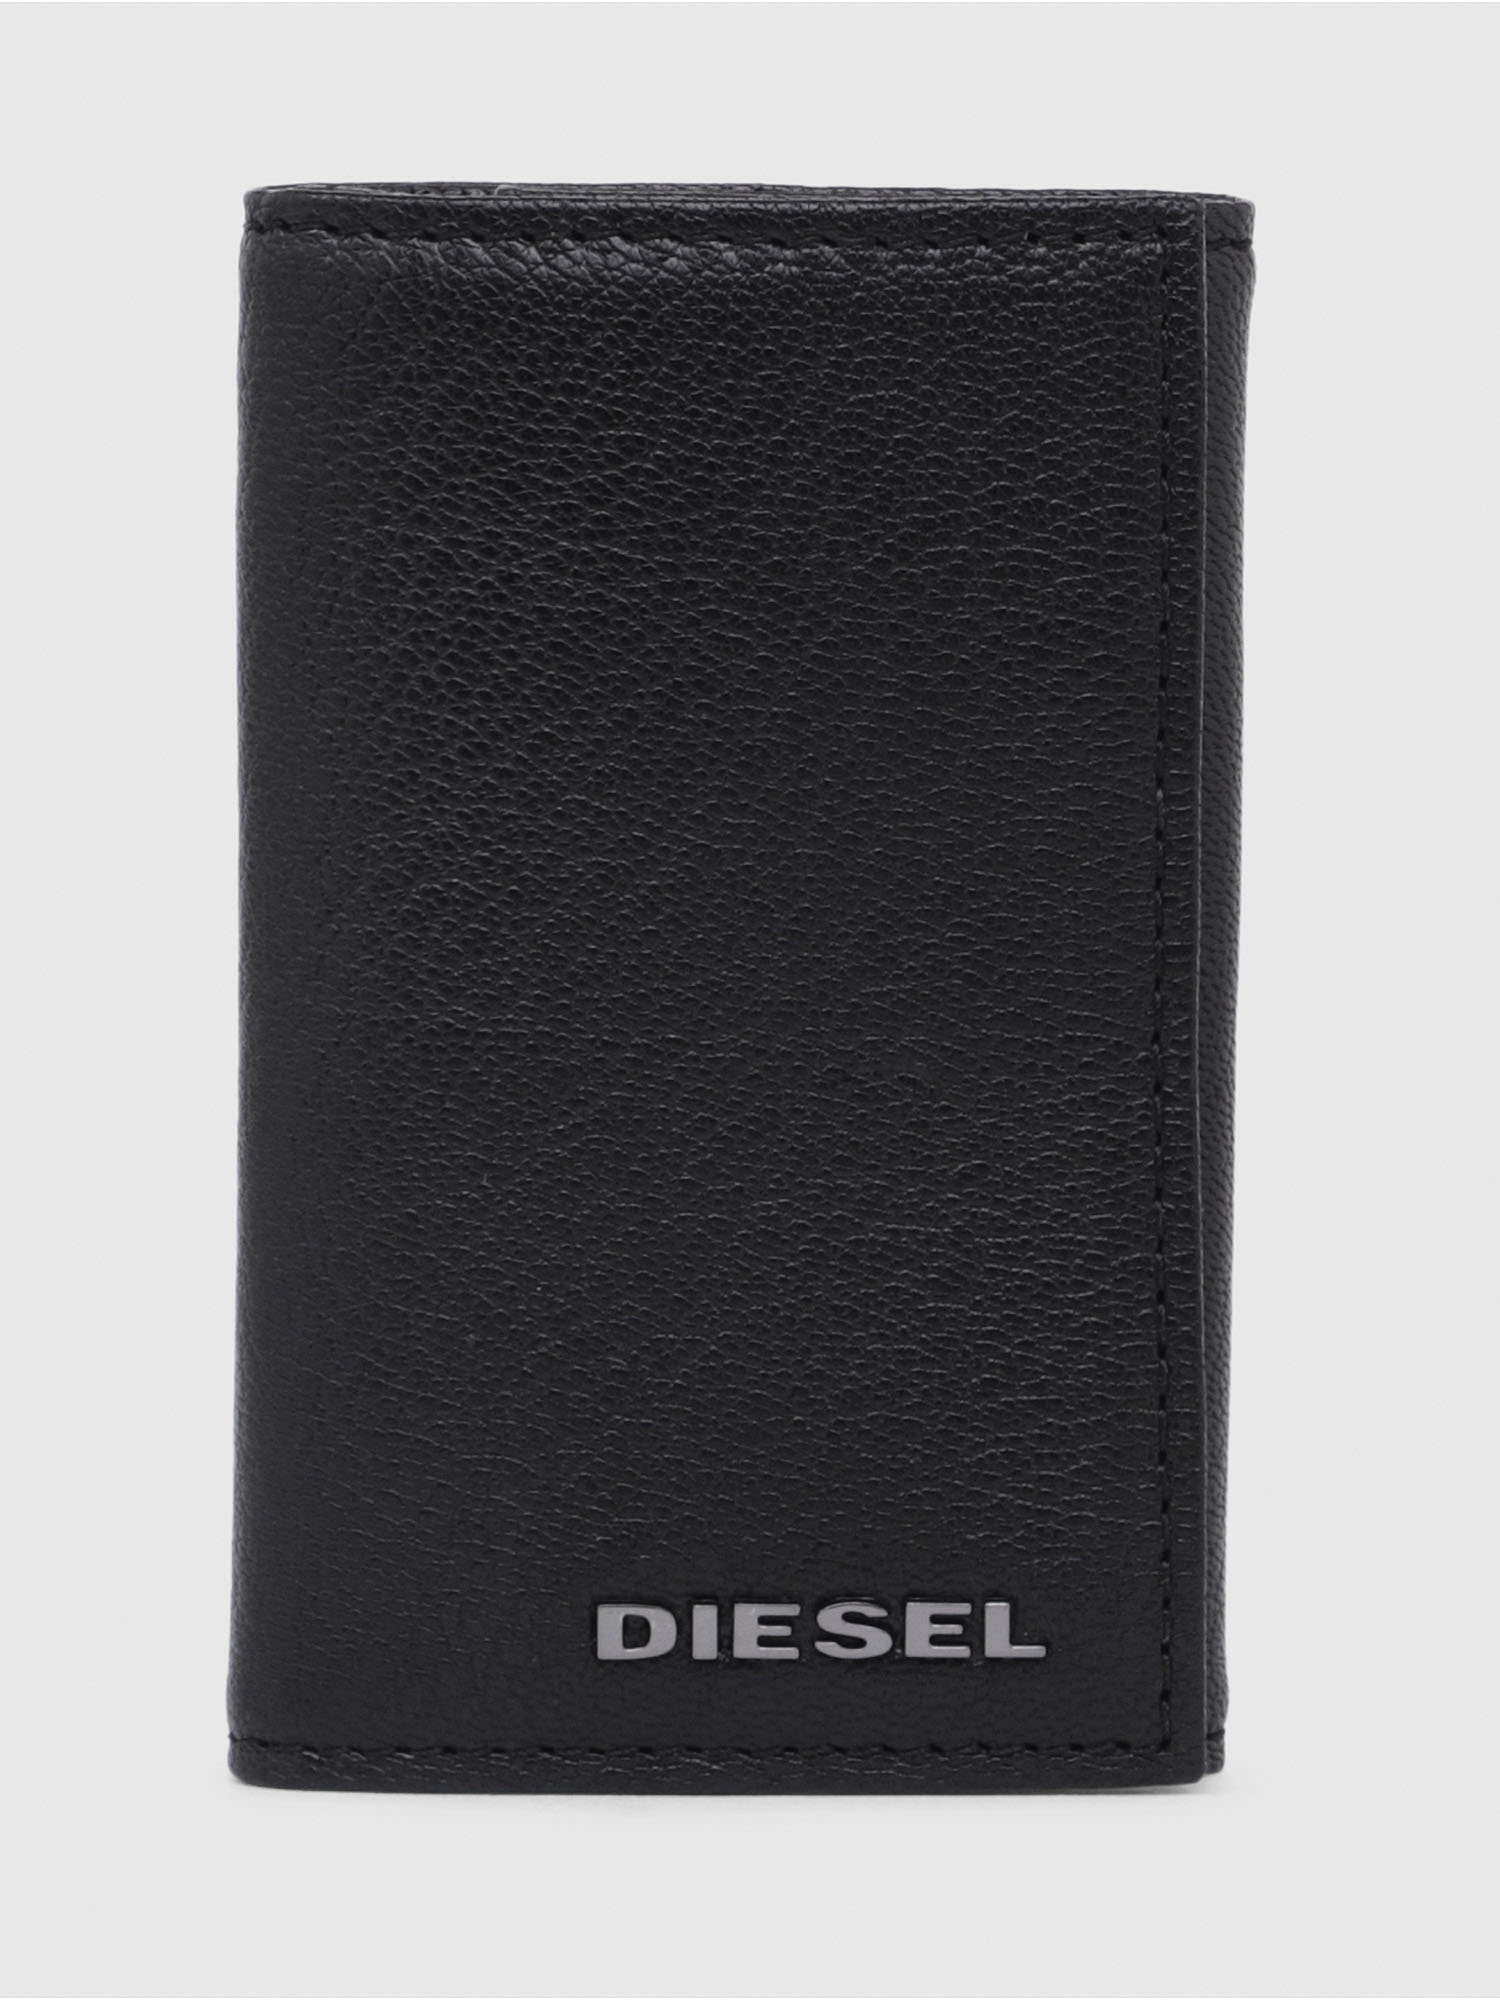 Diesel - KEYCASE O,  - Bijoux and Gadgets - Image 1